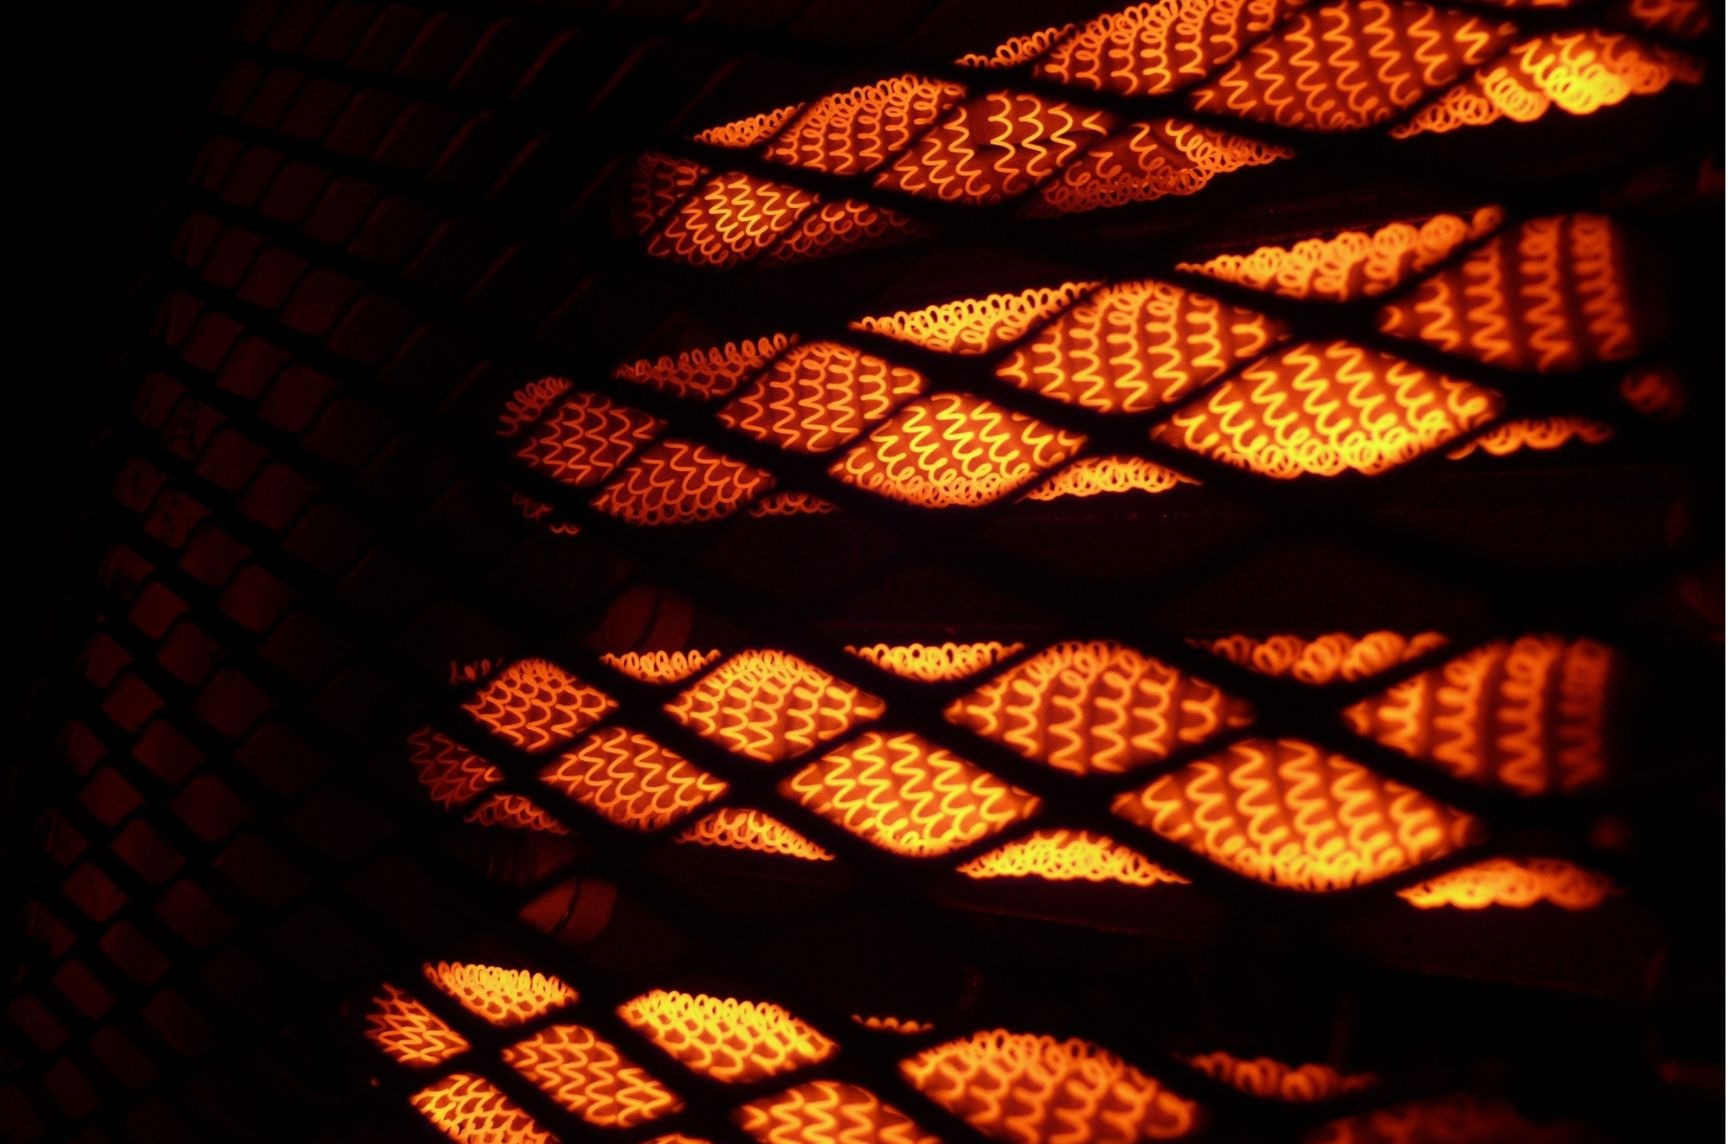 Are Electric Heaters Bad For Your Health? Cross-Examination